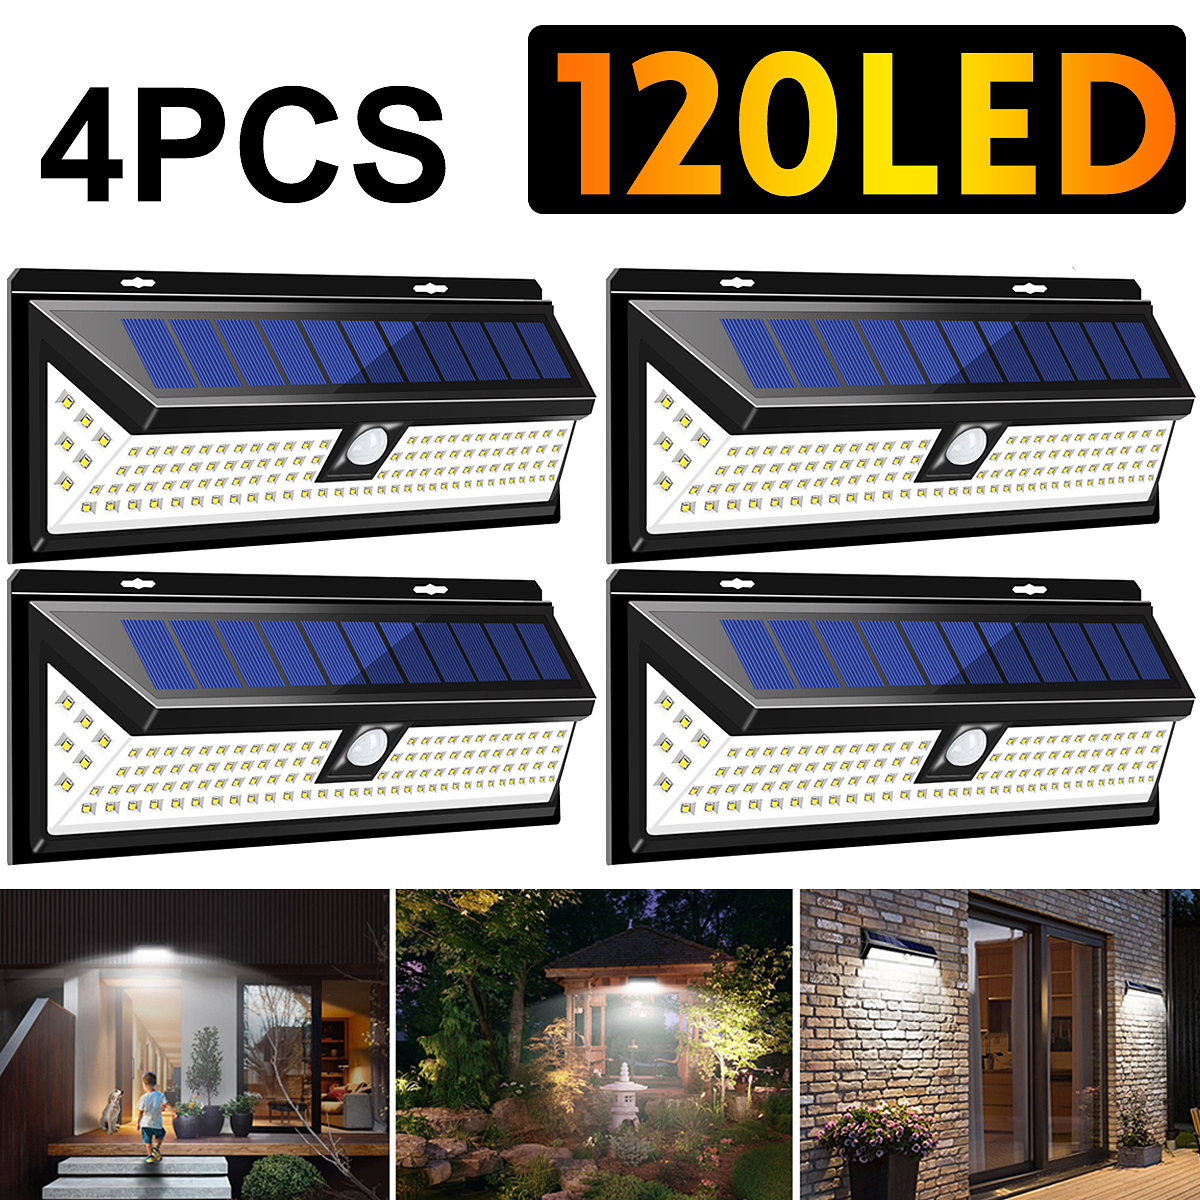 4Pcs Waterproof Sensor Wall Light 1200LM 120 LED 3 Modes Solar Power PIR Motion Sensor Wall Light Outdoor Safety Lamp